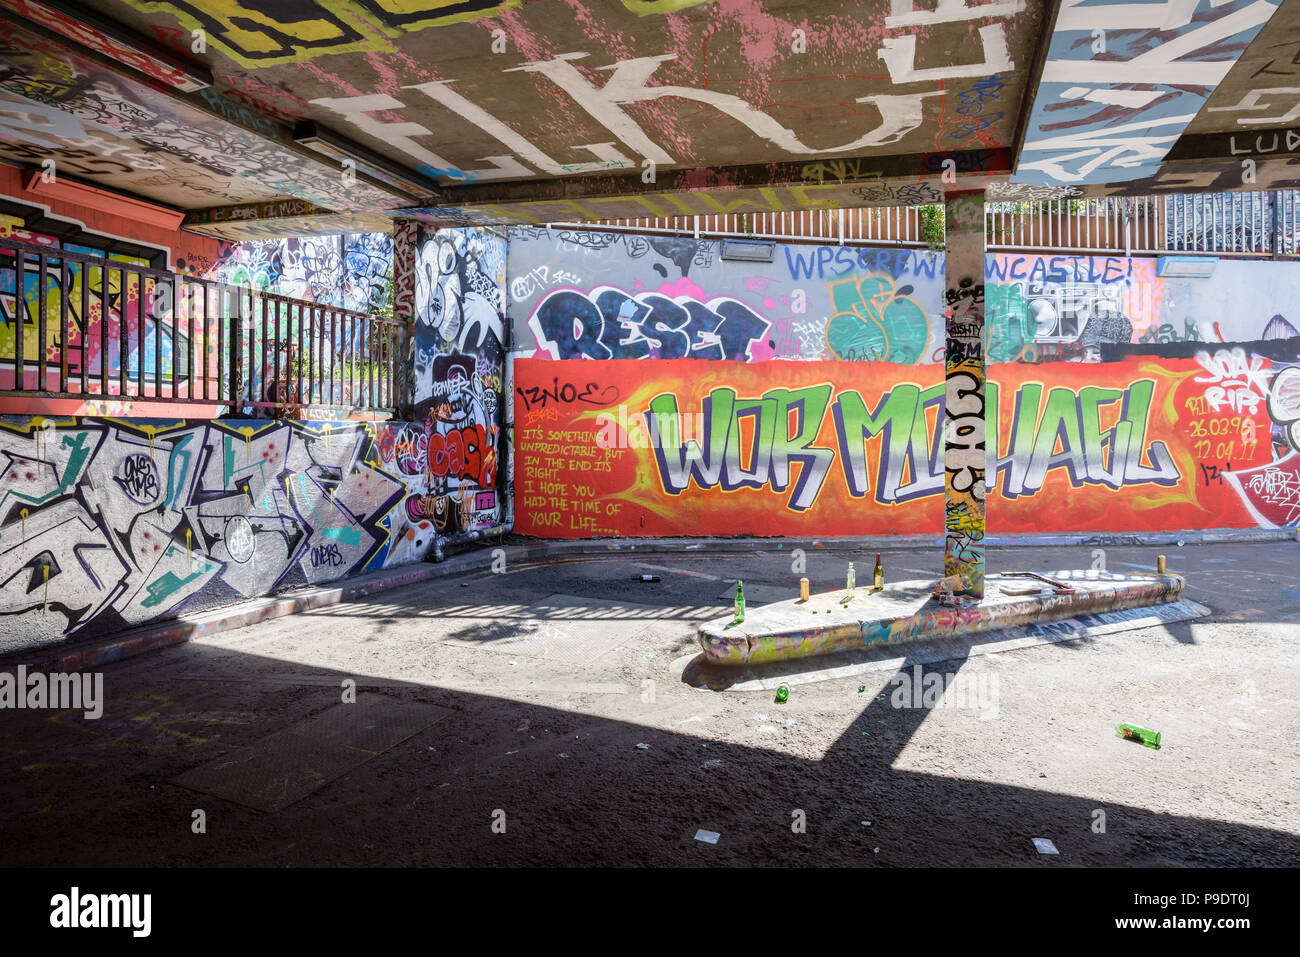 Empty bottles and cans of alcohol left in Banksy Tunnel in Leake Street in Waterloo, London, against a backdrop of graffiti on walls Stock Photo